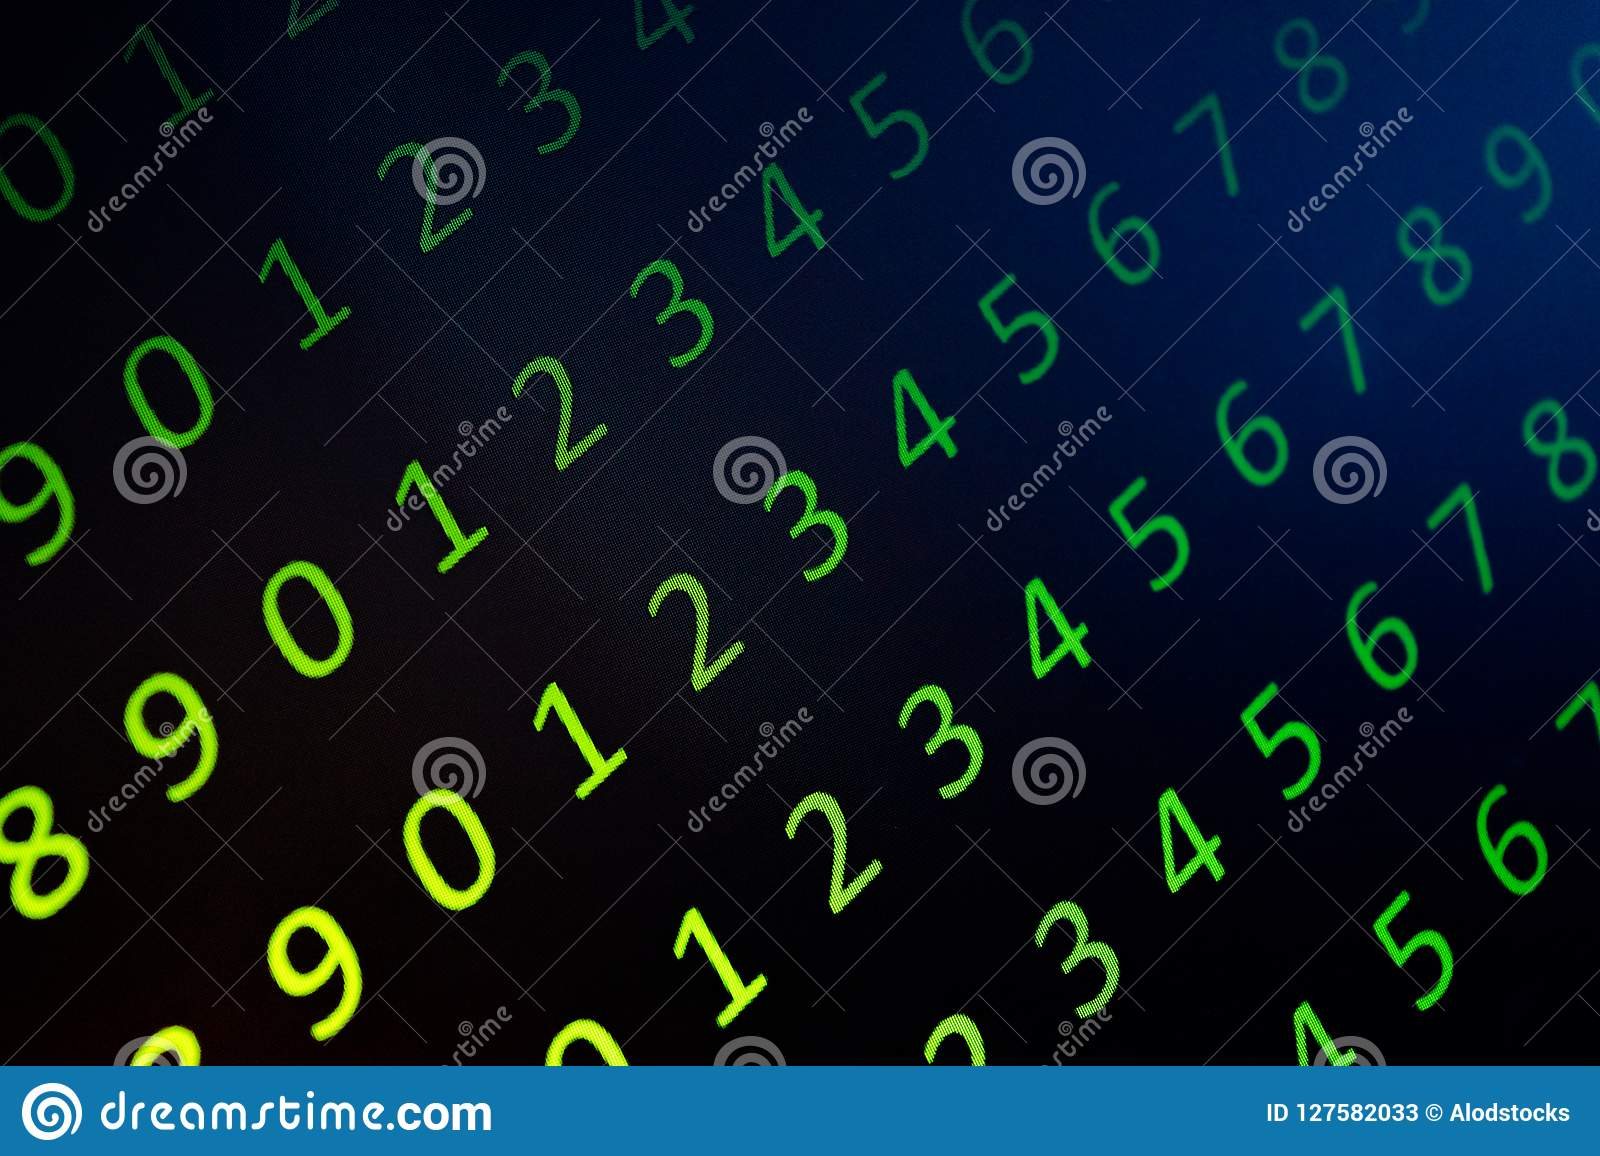 Numerical continuous, abctract data in binary code, give technology felling.